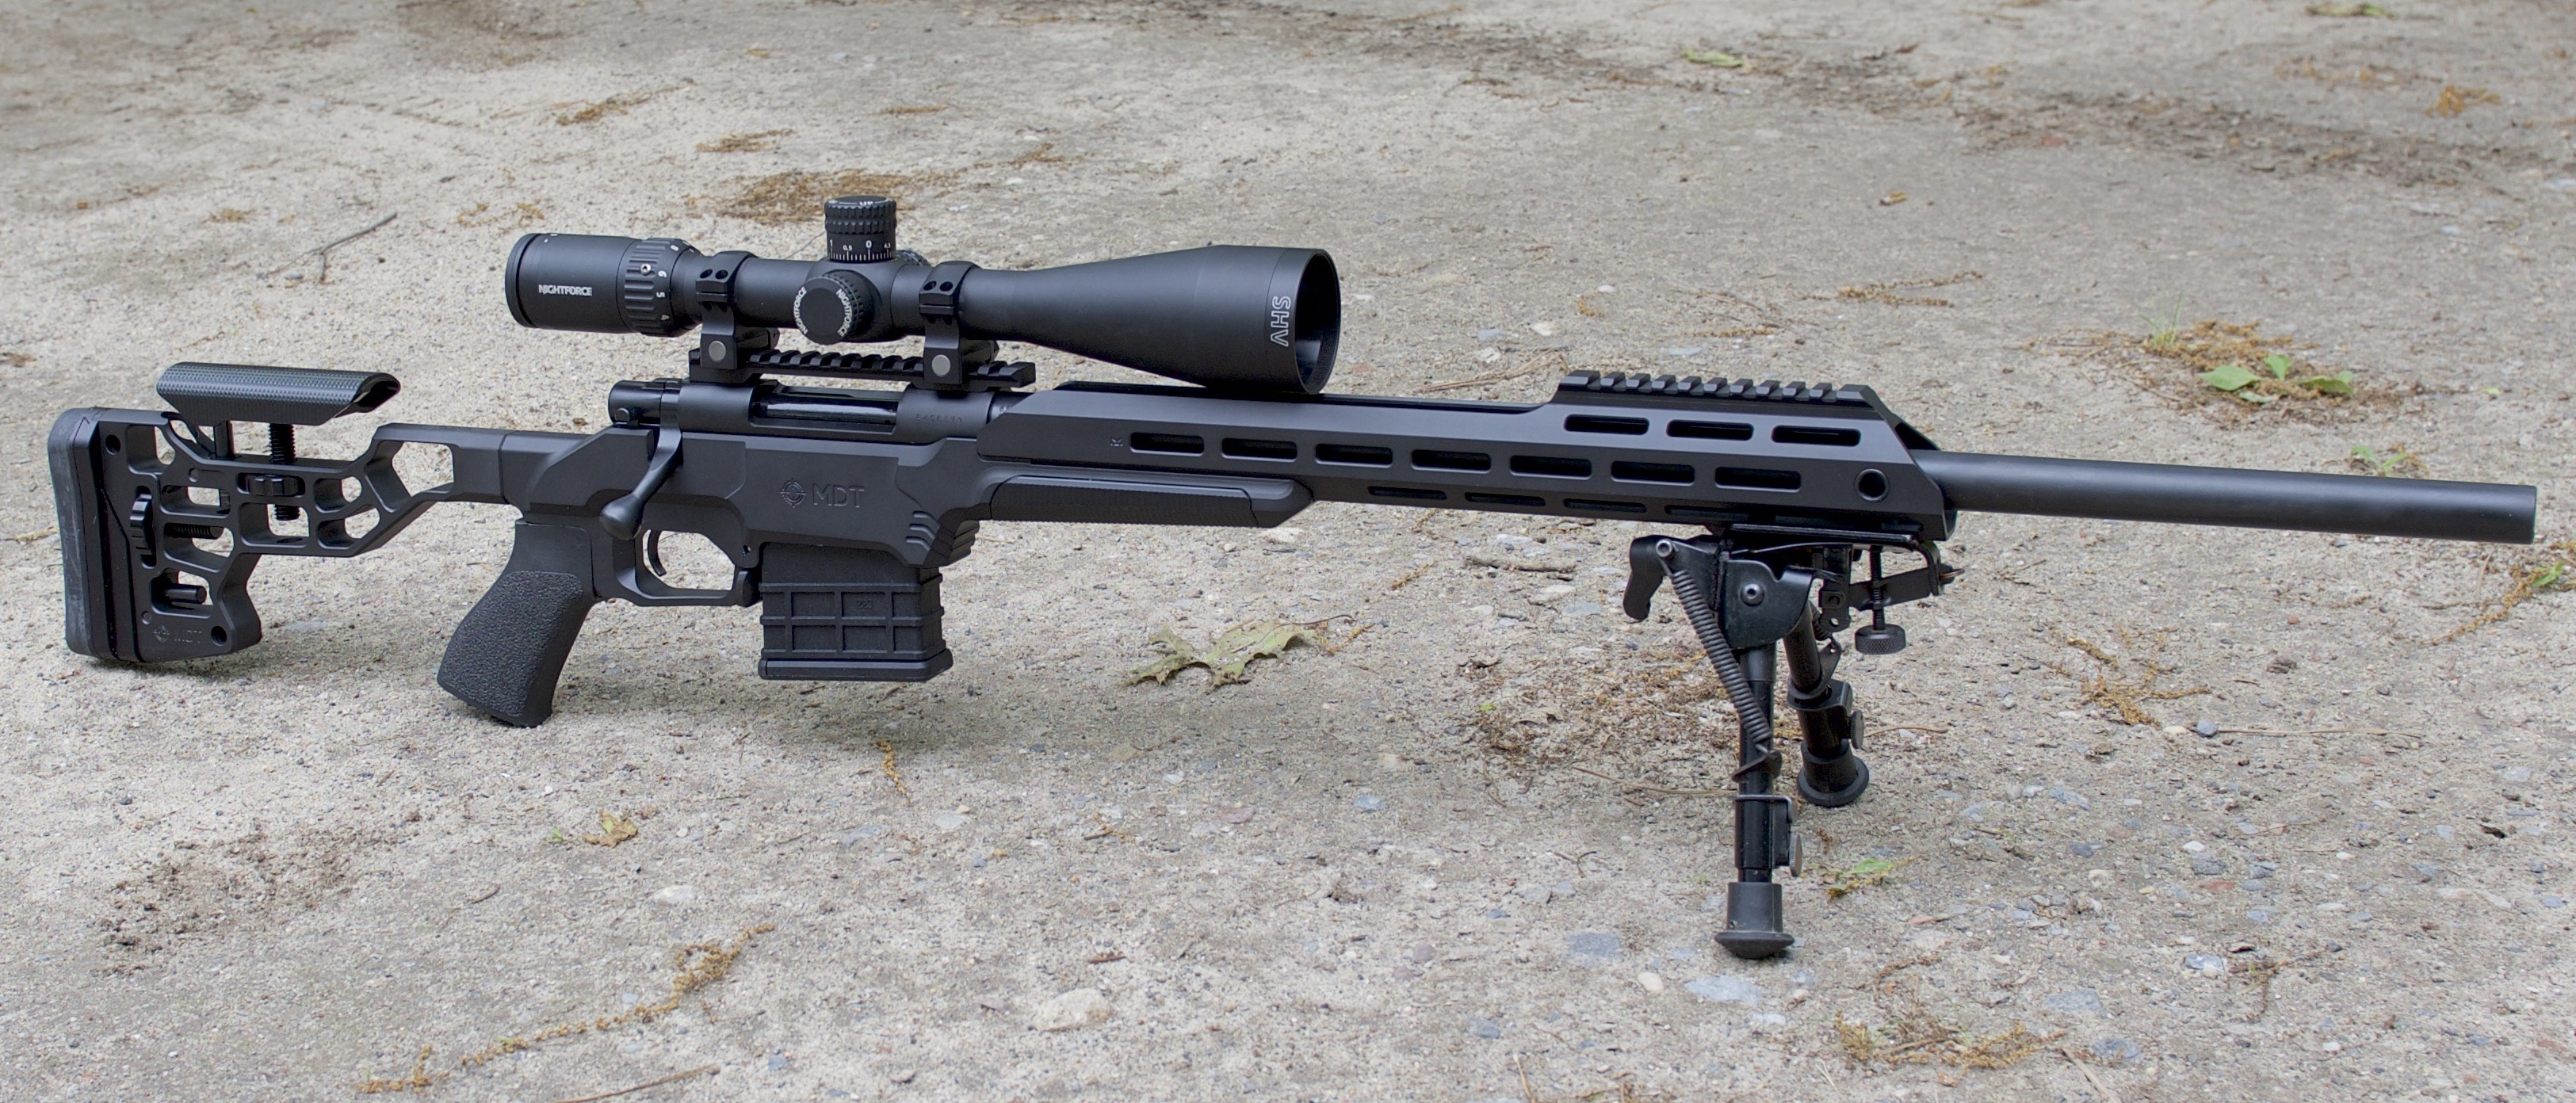 Stock options for howa 1500